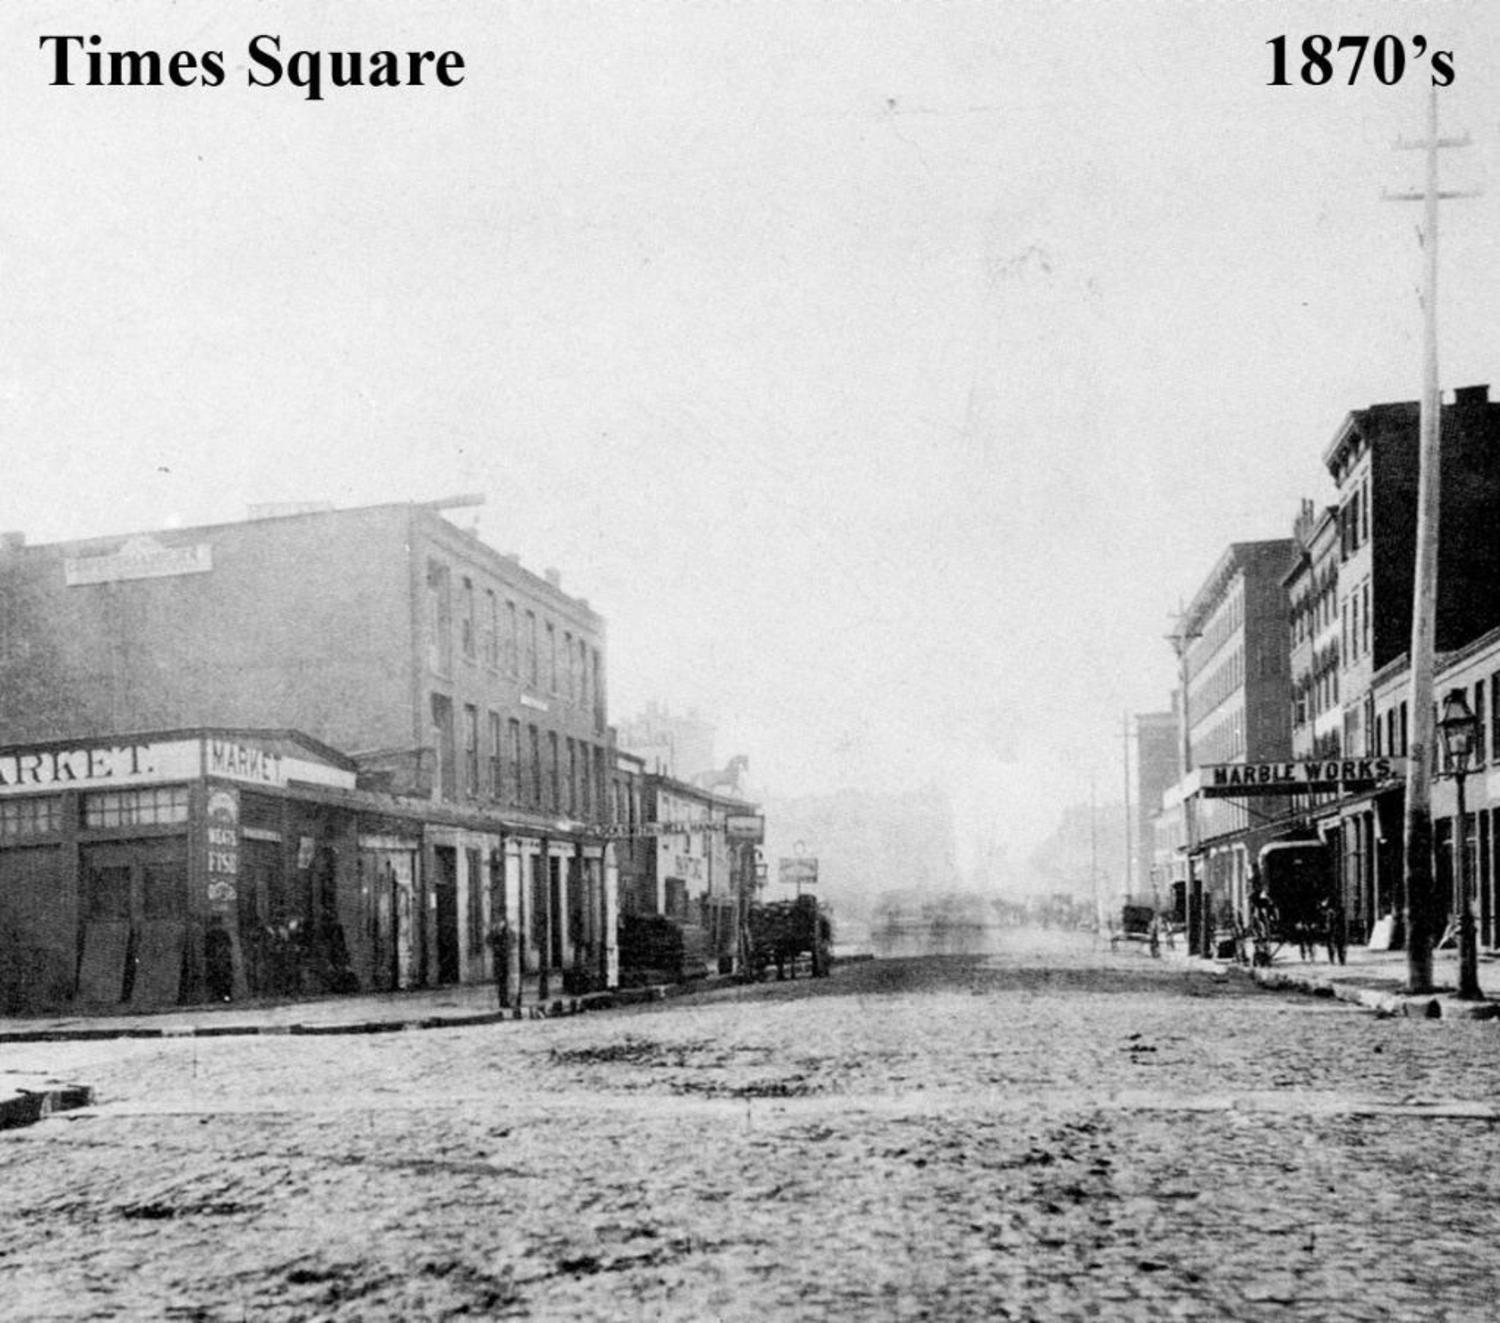 """Longacre Square (renamed to """"Times Square"""" in 1904) circa 1870's"""